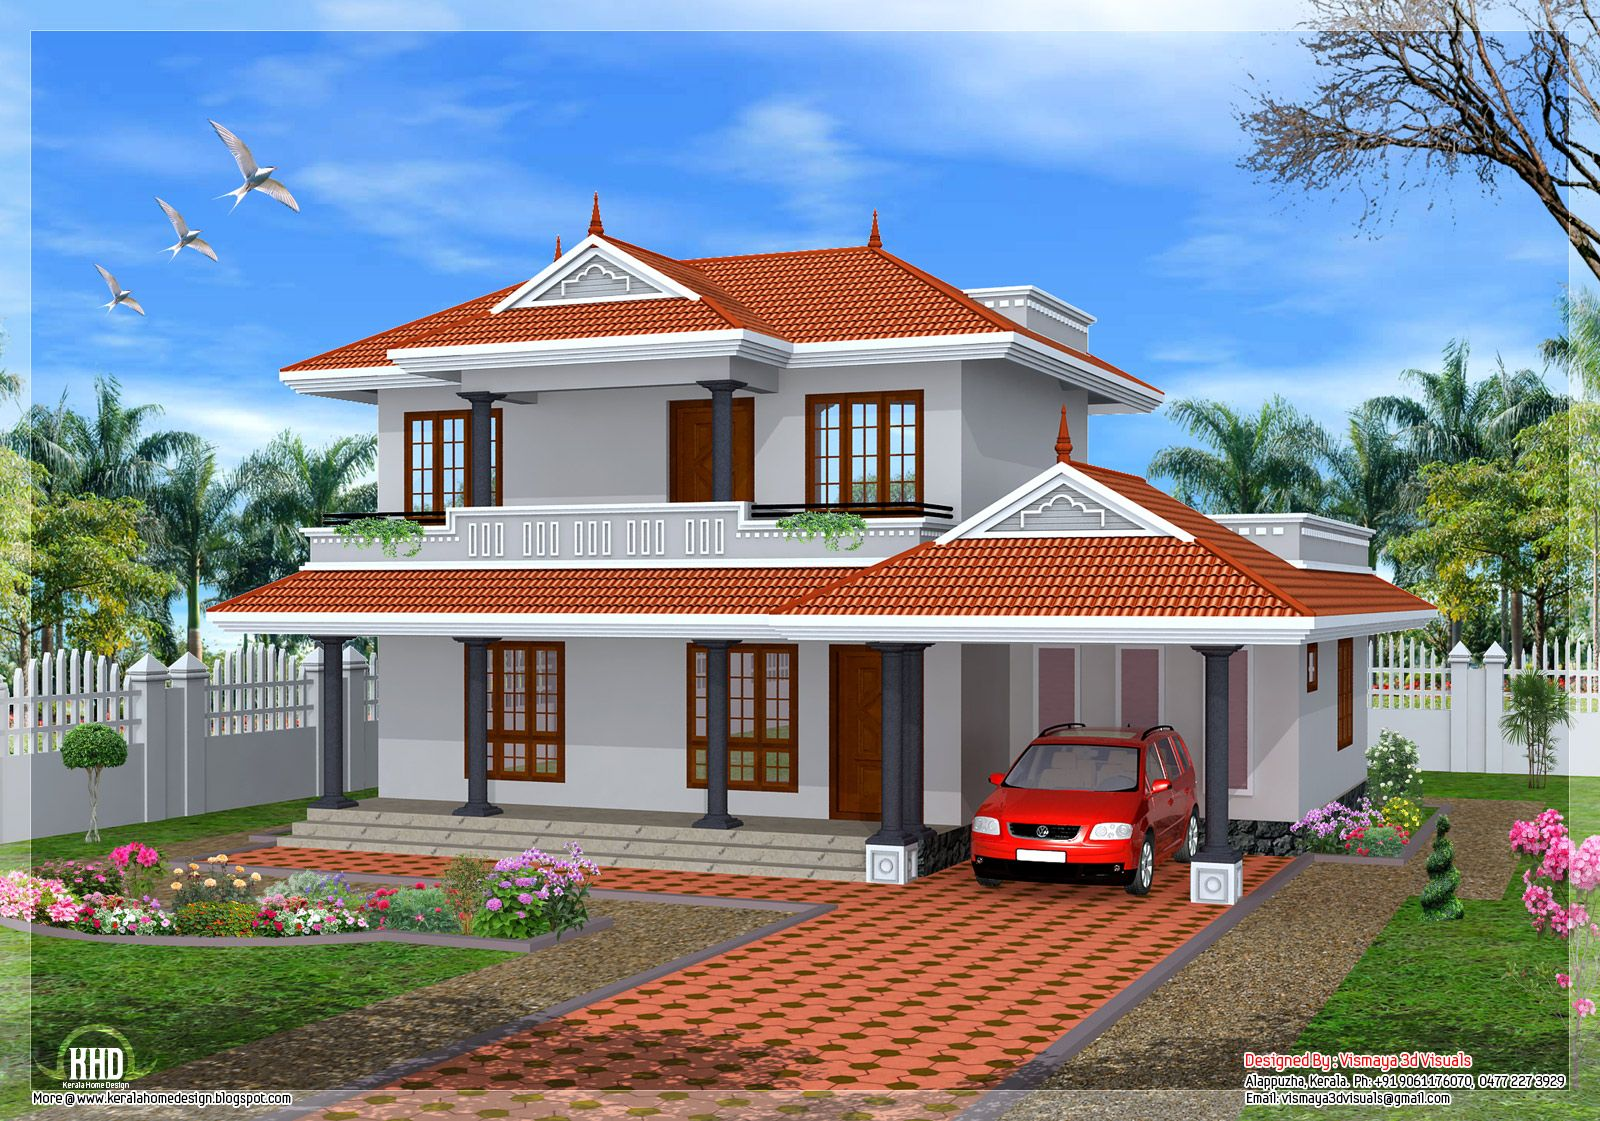 kerala home design home and house home elevation plans 3d exterior design creative exterior design home inspiration pinterest kerala home design